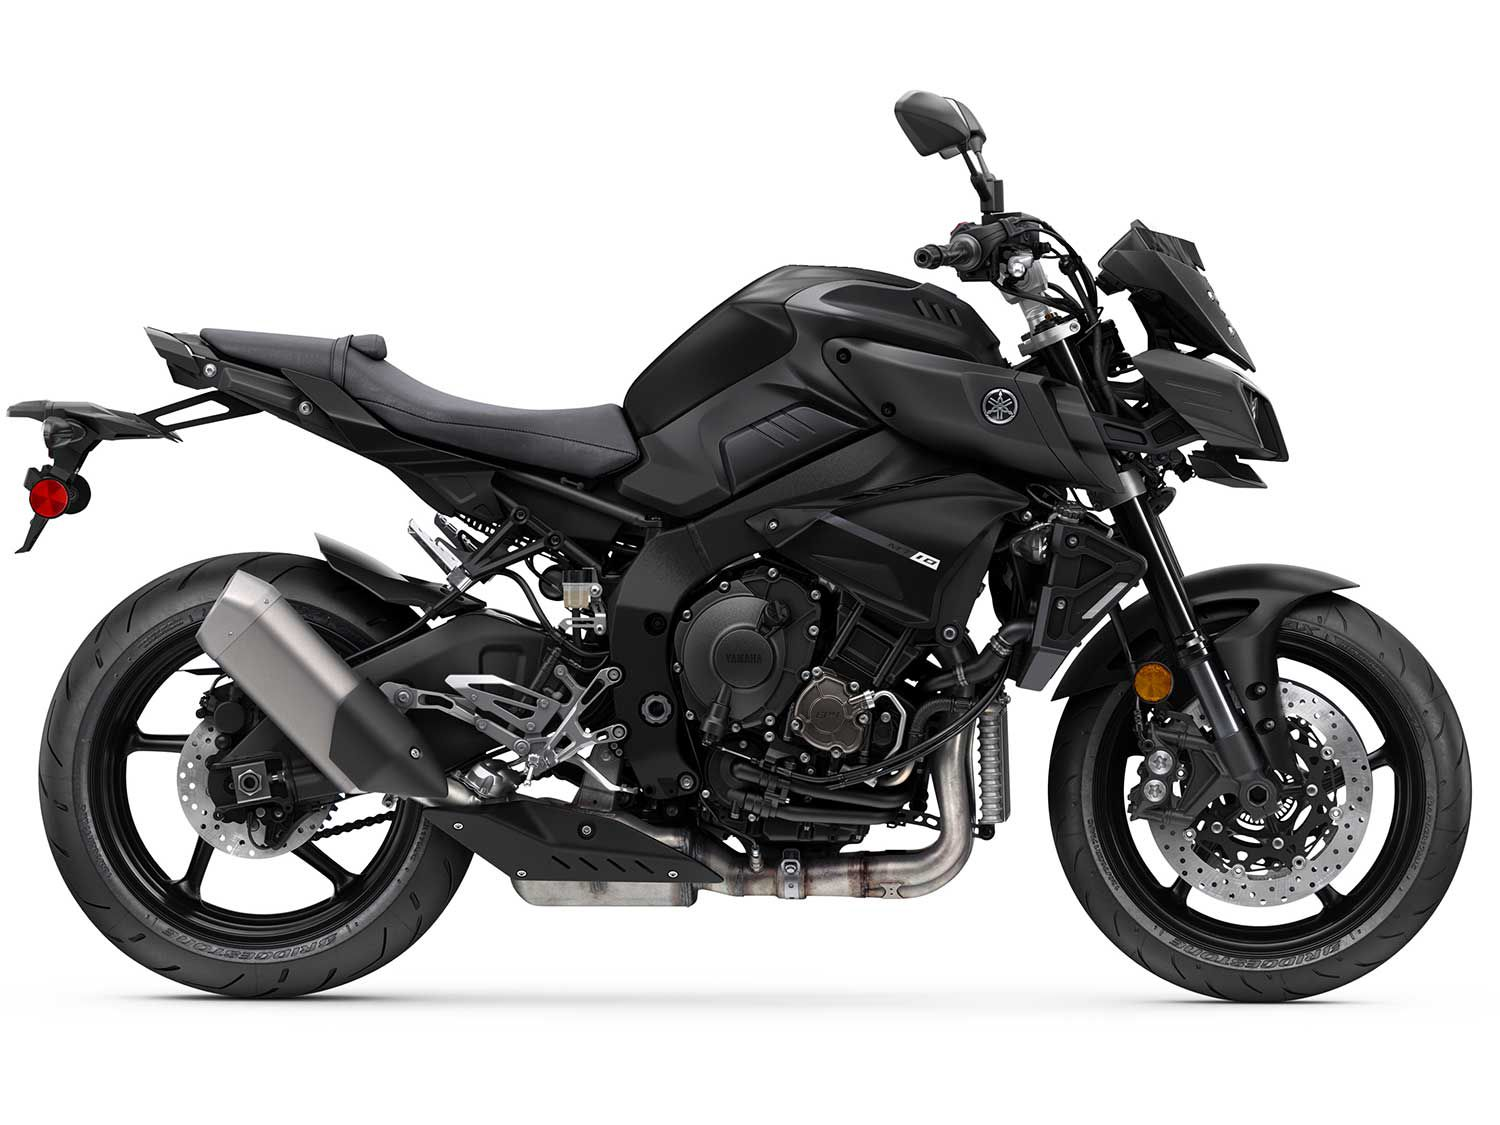 The 2020 Yamaha MT-10 is equipped with a fully adjustable inverted 43mm KYB fork with 4.7 inches of travel.